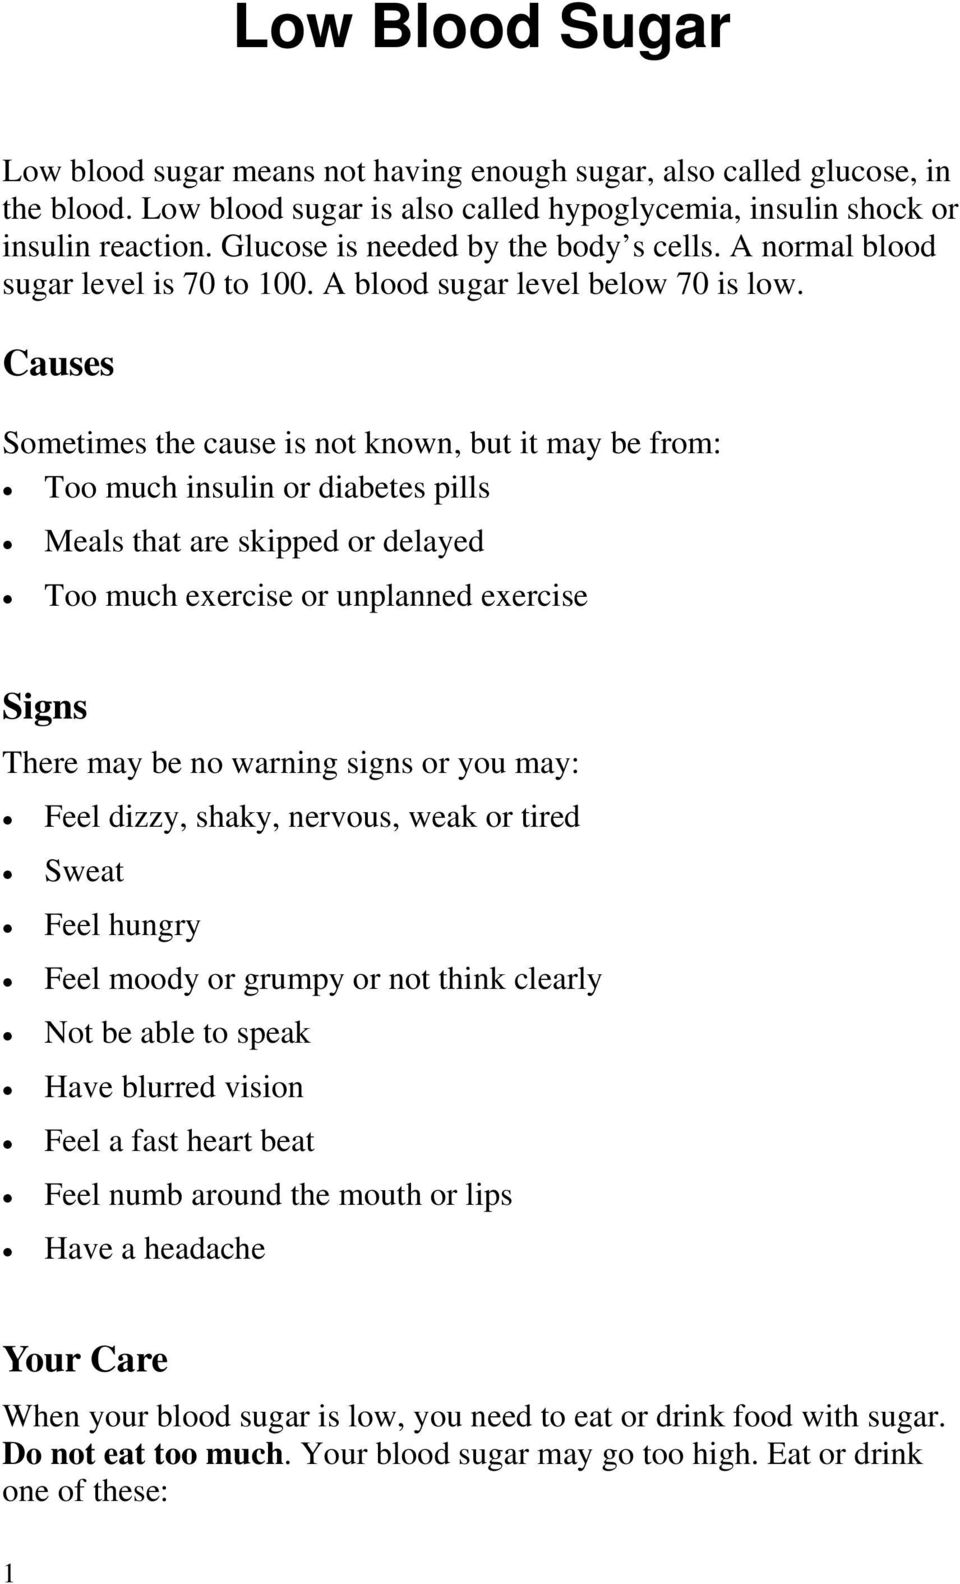 Causes Sometimes the cause is not known, but it may be from: Too much insulin or diabetes pills Meals that are skipped or delayed Too much exercise or unplanned exercise Signs There may be no warning